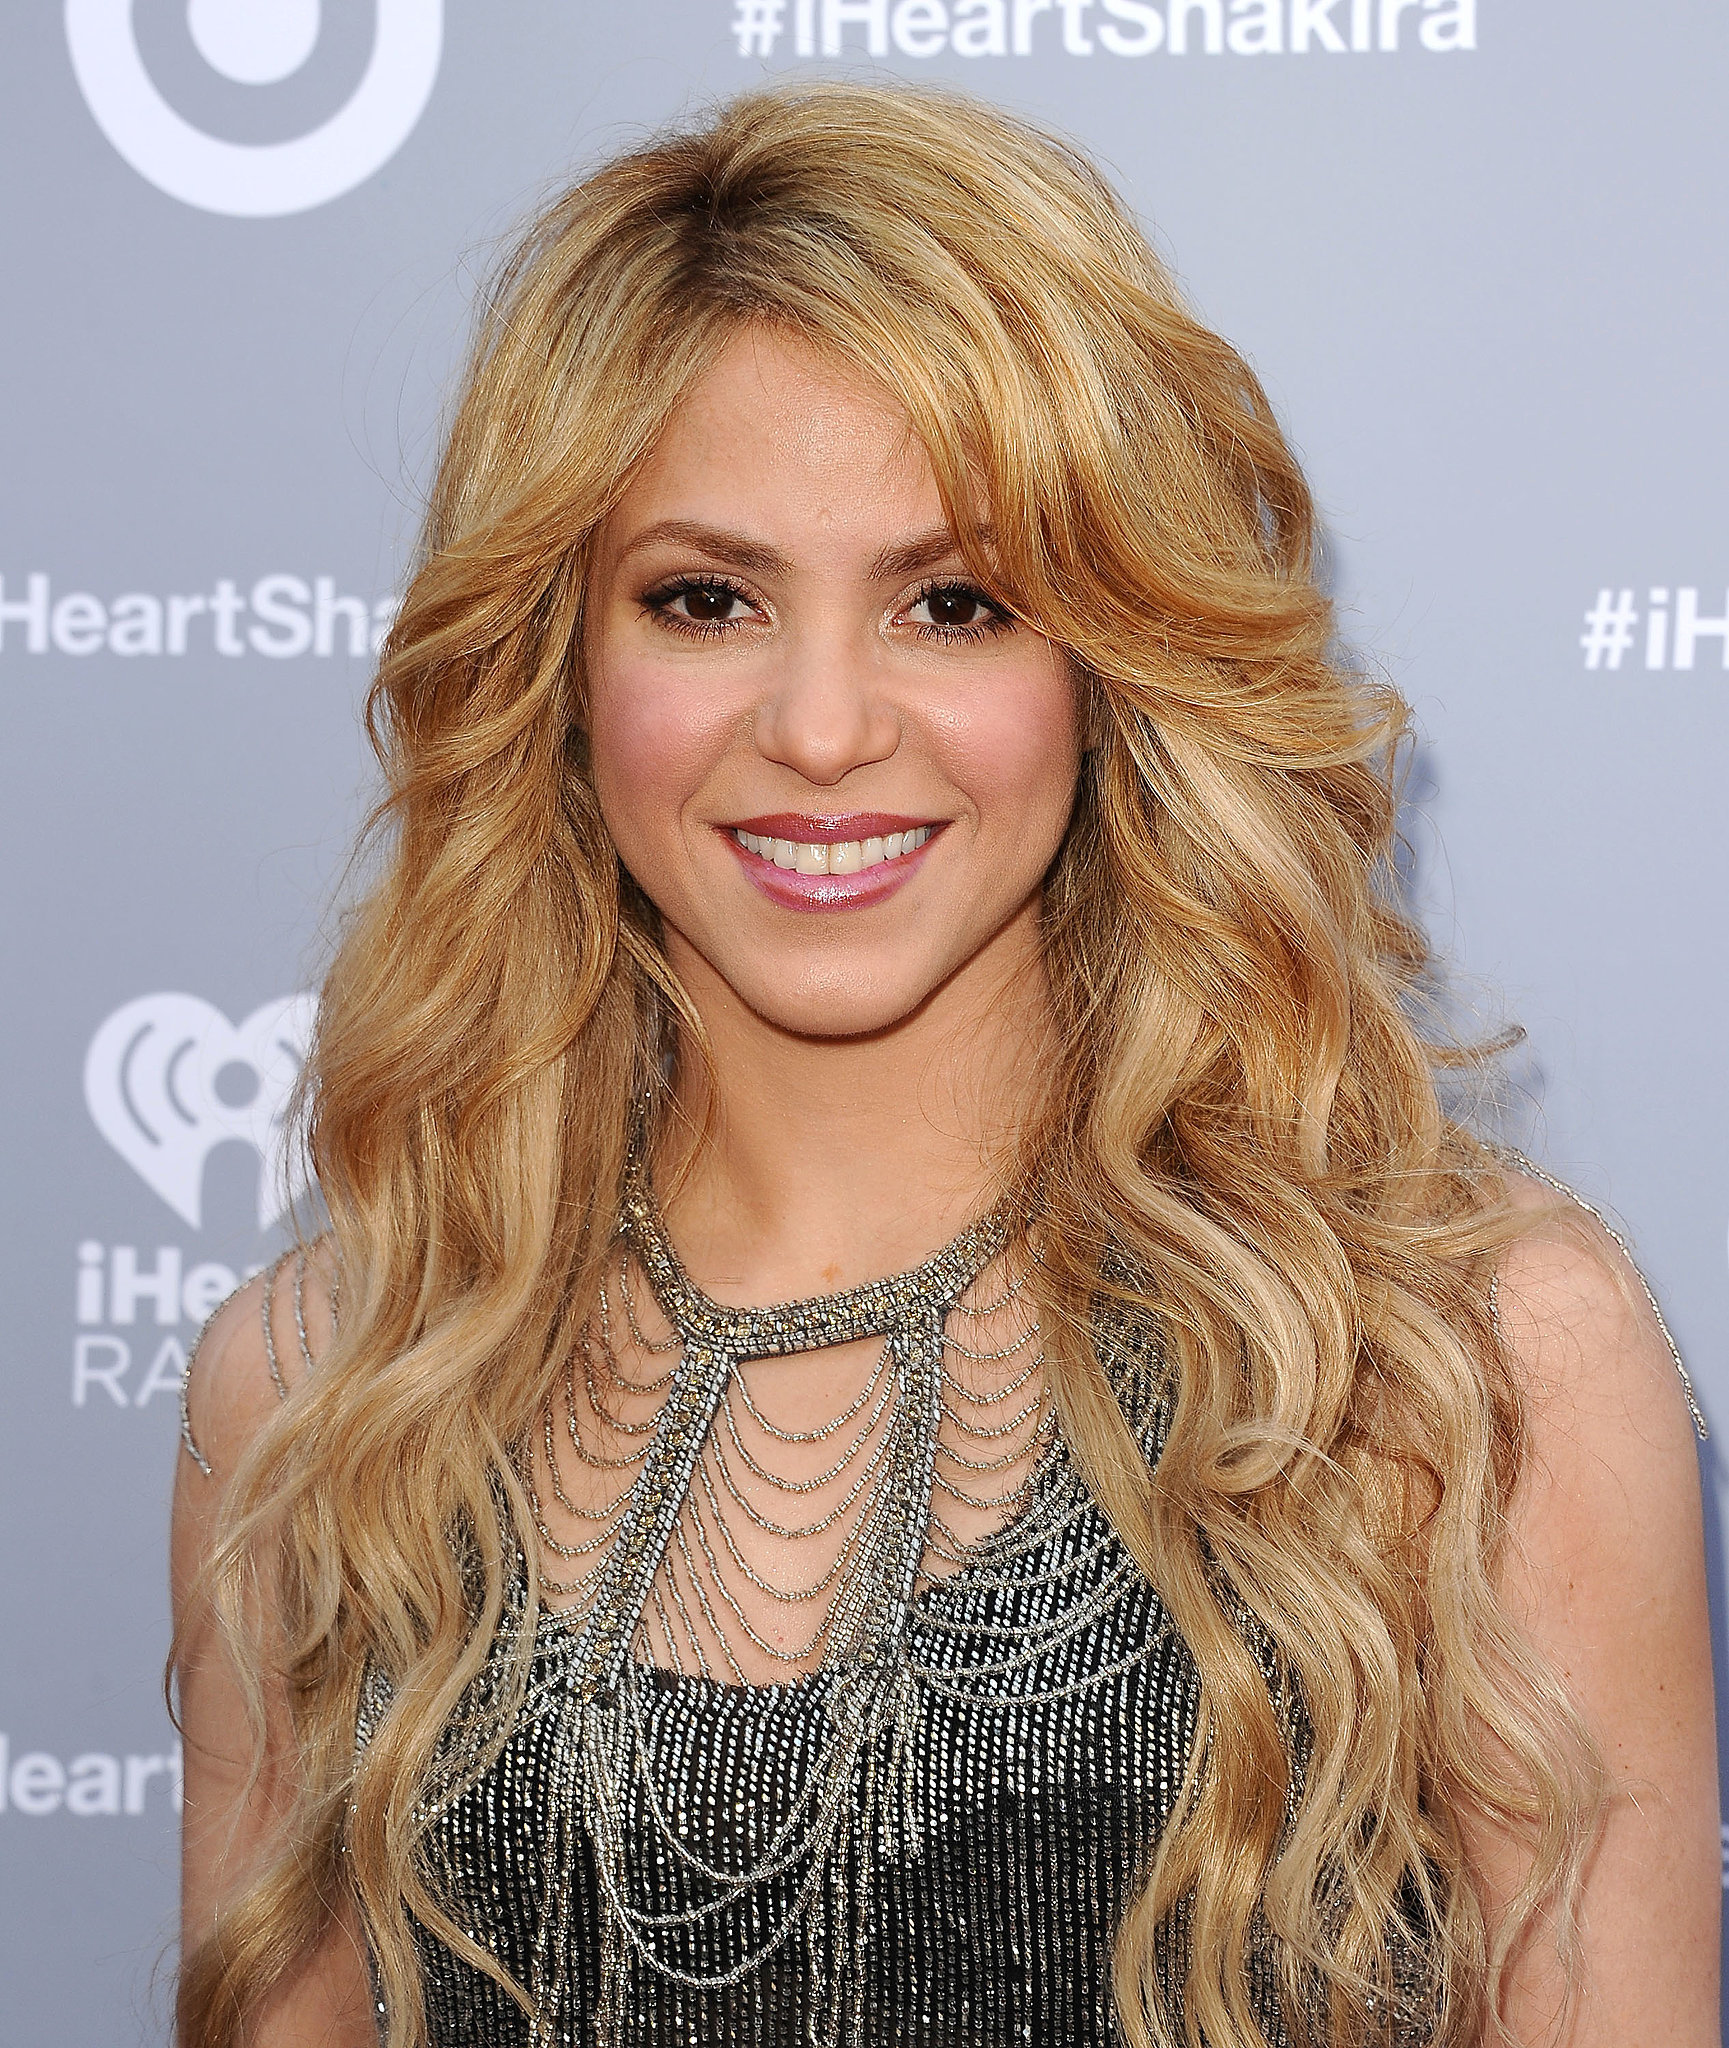 Want to get glowing like Shakira ? InStyle has her top beauty secret! Shakira